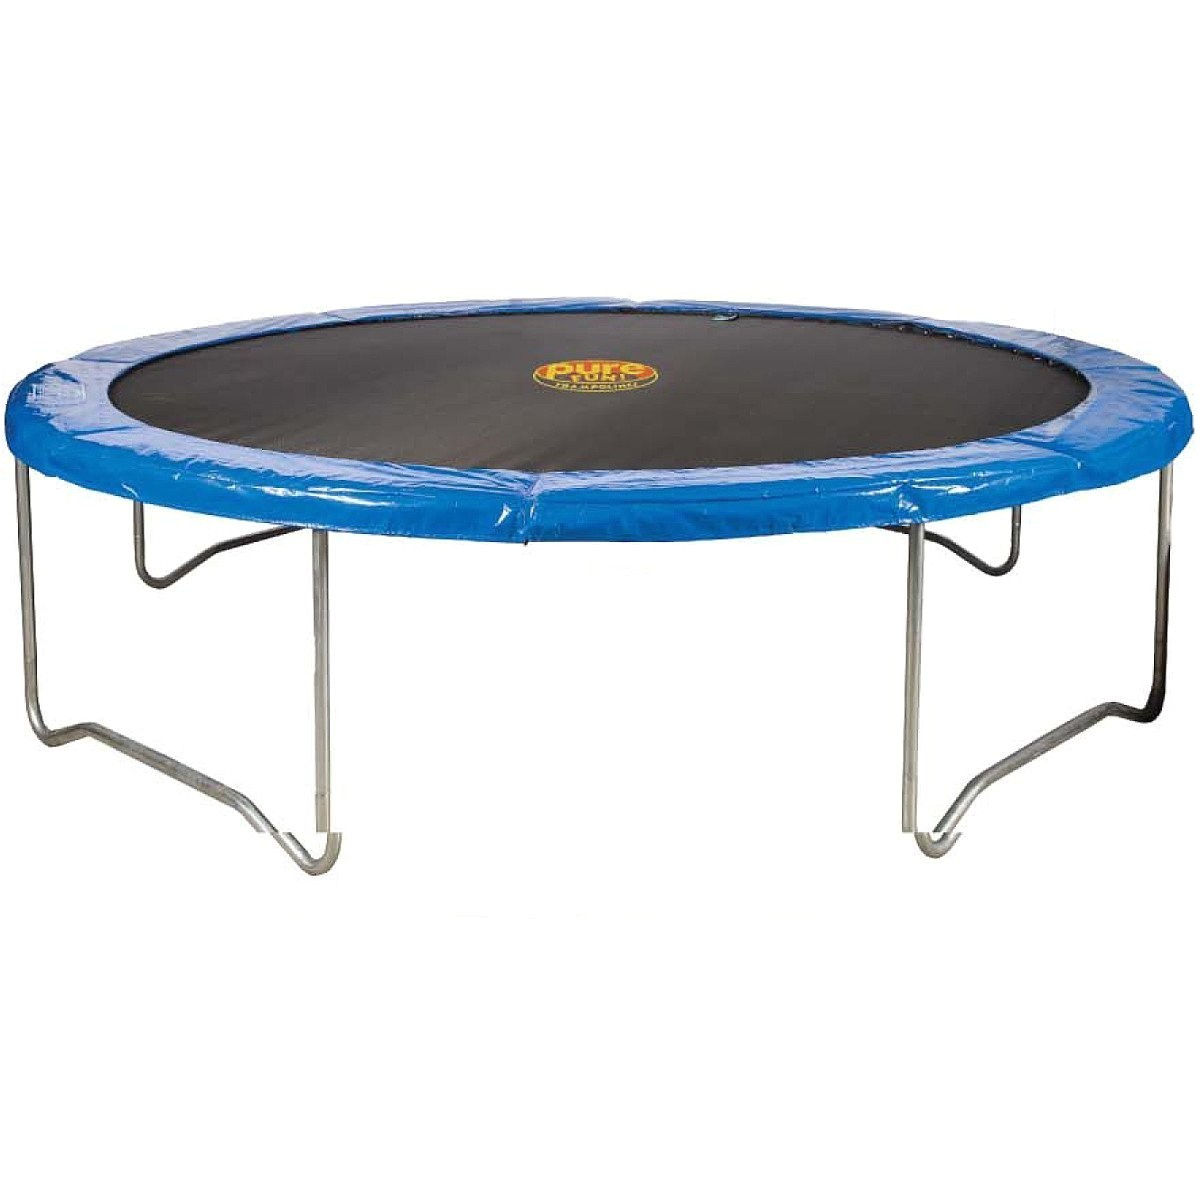 12ft Trampoline Mat and Springs Homcom 12ft Fitness Trampoline with Safety Pad Mat and